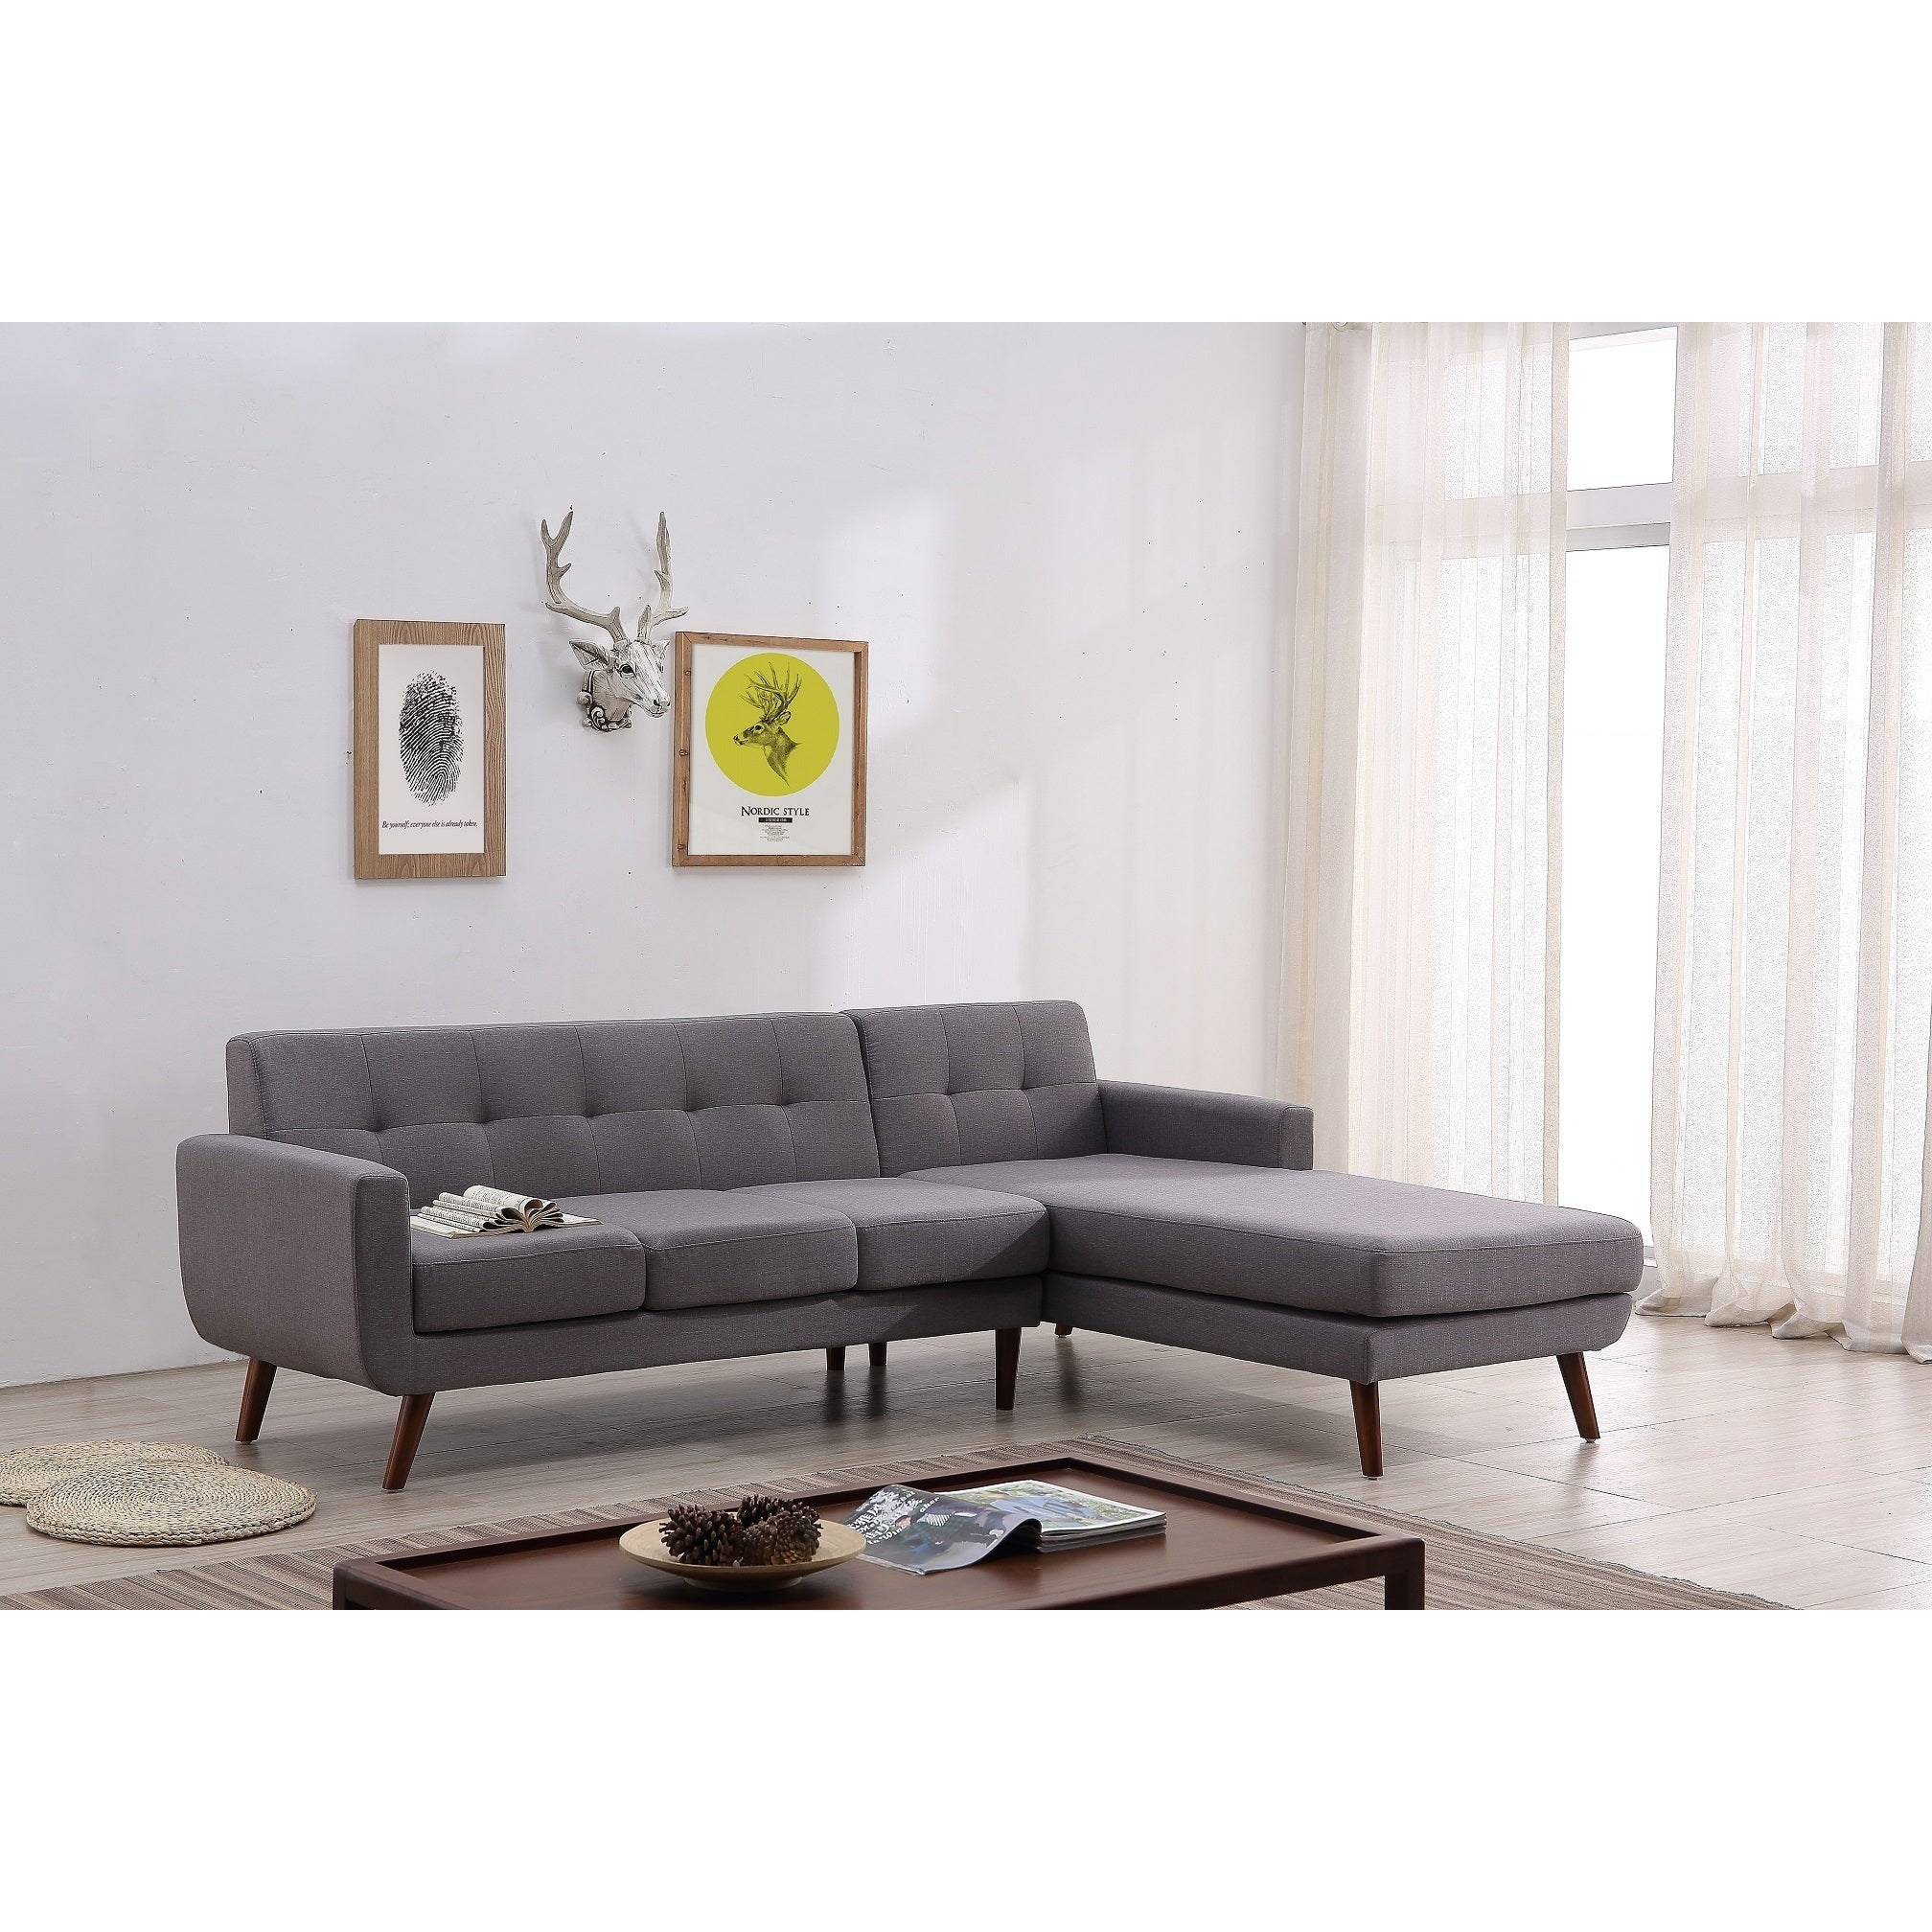 Mid Century Right Facing Tufted Linen Fabric Upholstered Sectional Sofa    Free Shipping Today   Overstock   23073440